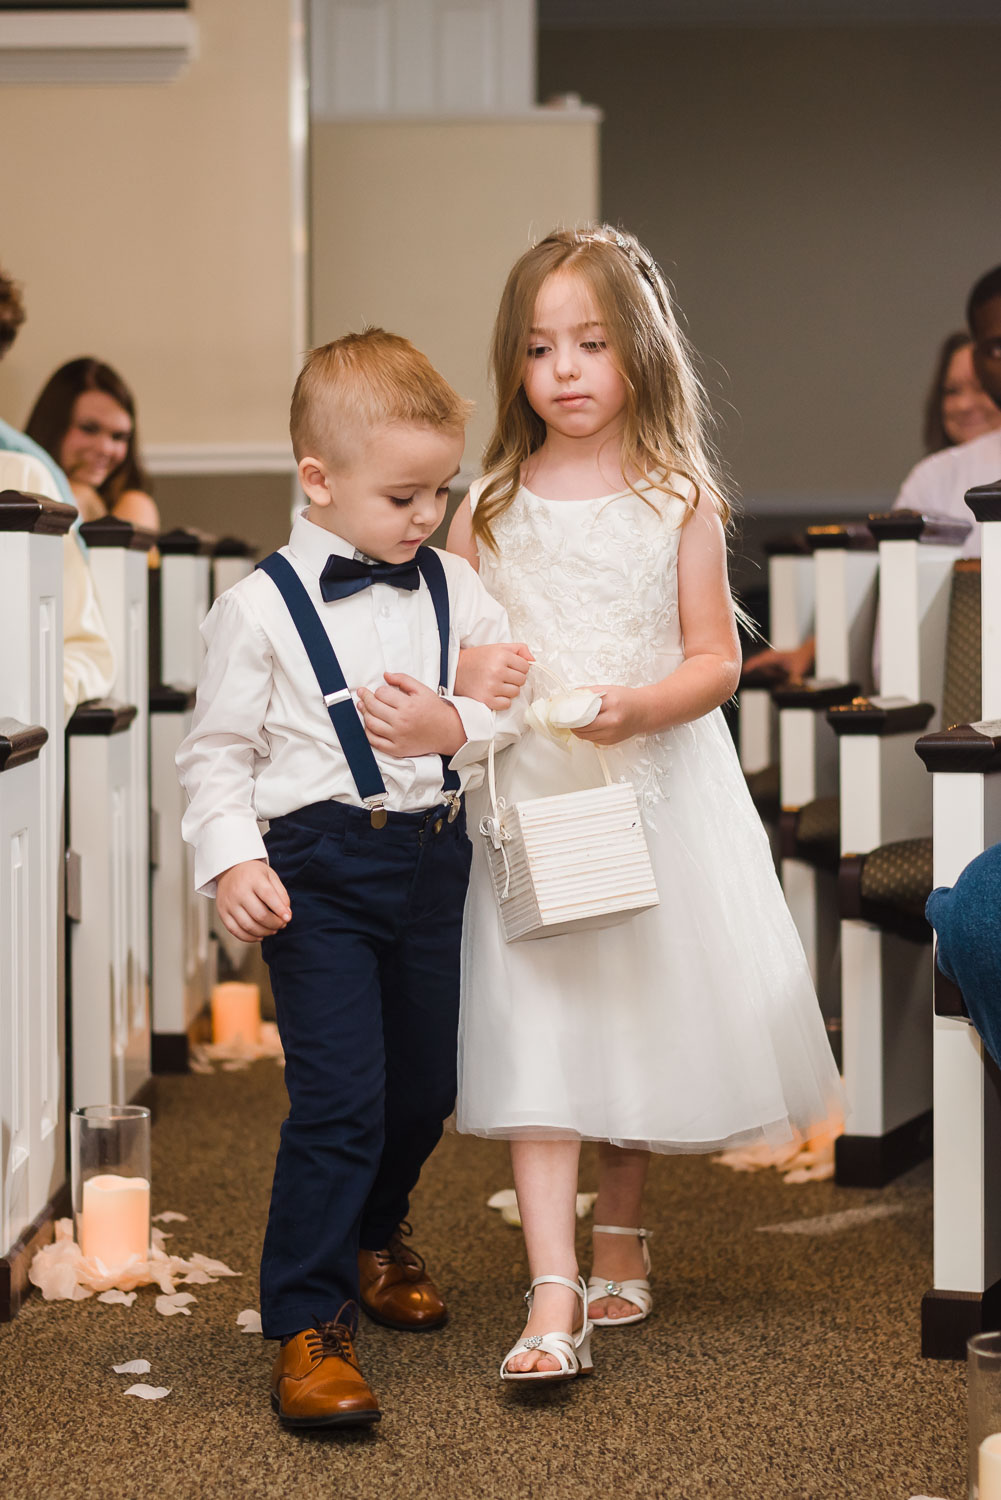 little ring bearer walking arm in arm with the flower girl into the church.